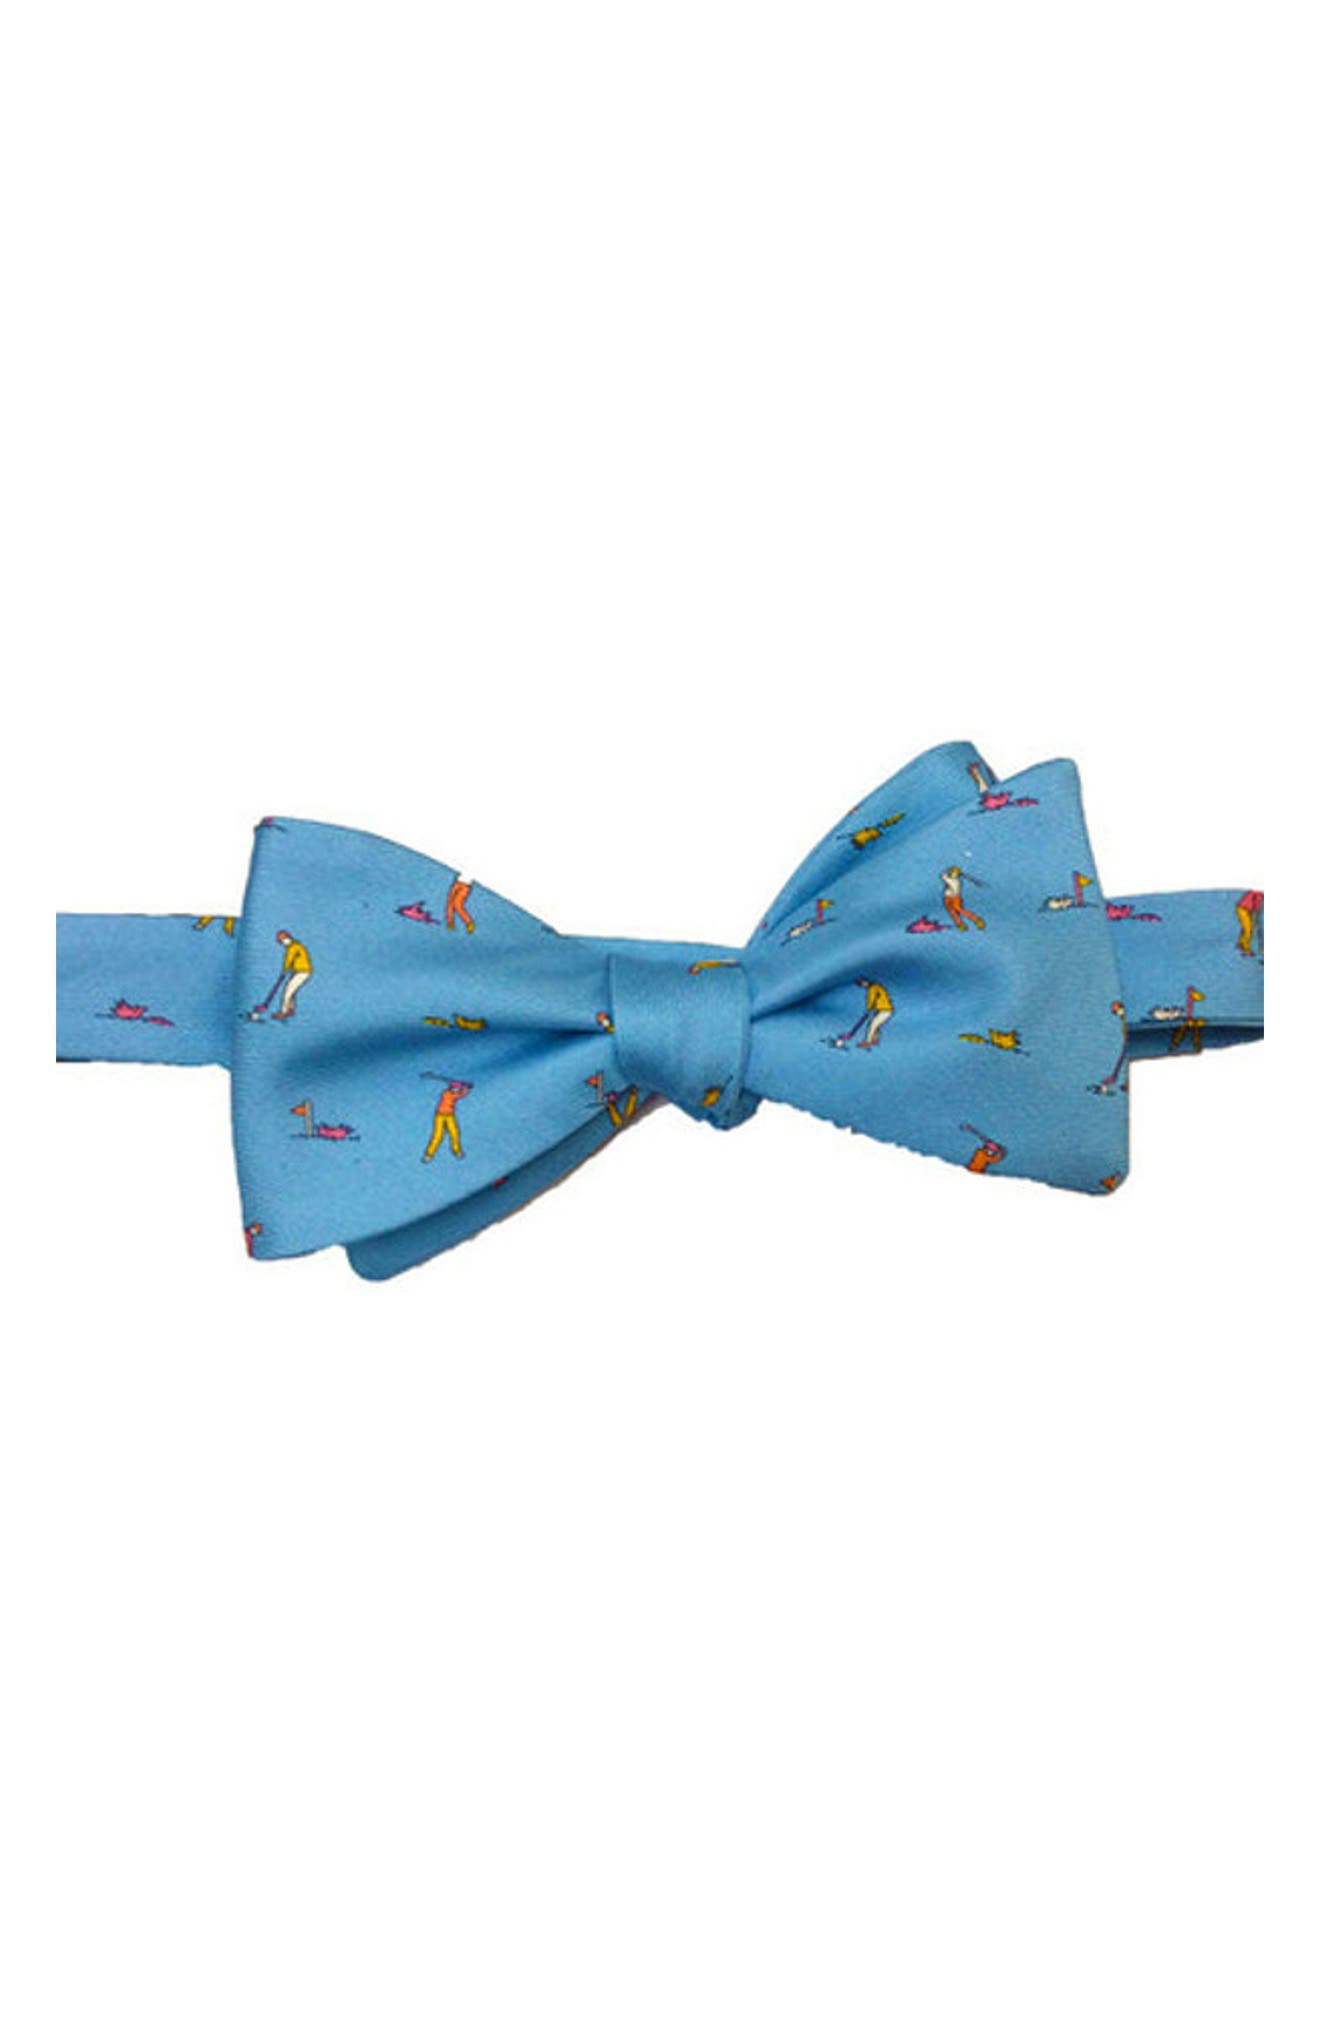 Foreplay Silk Bow Tie,                         Main,                         color, Light Blue